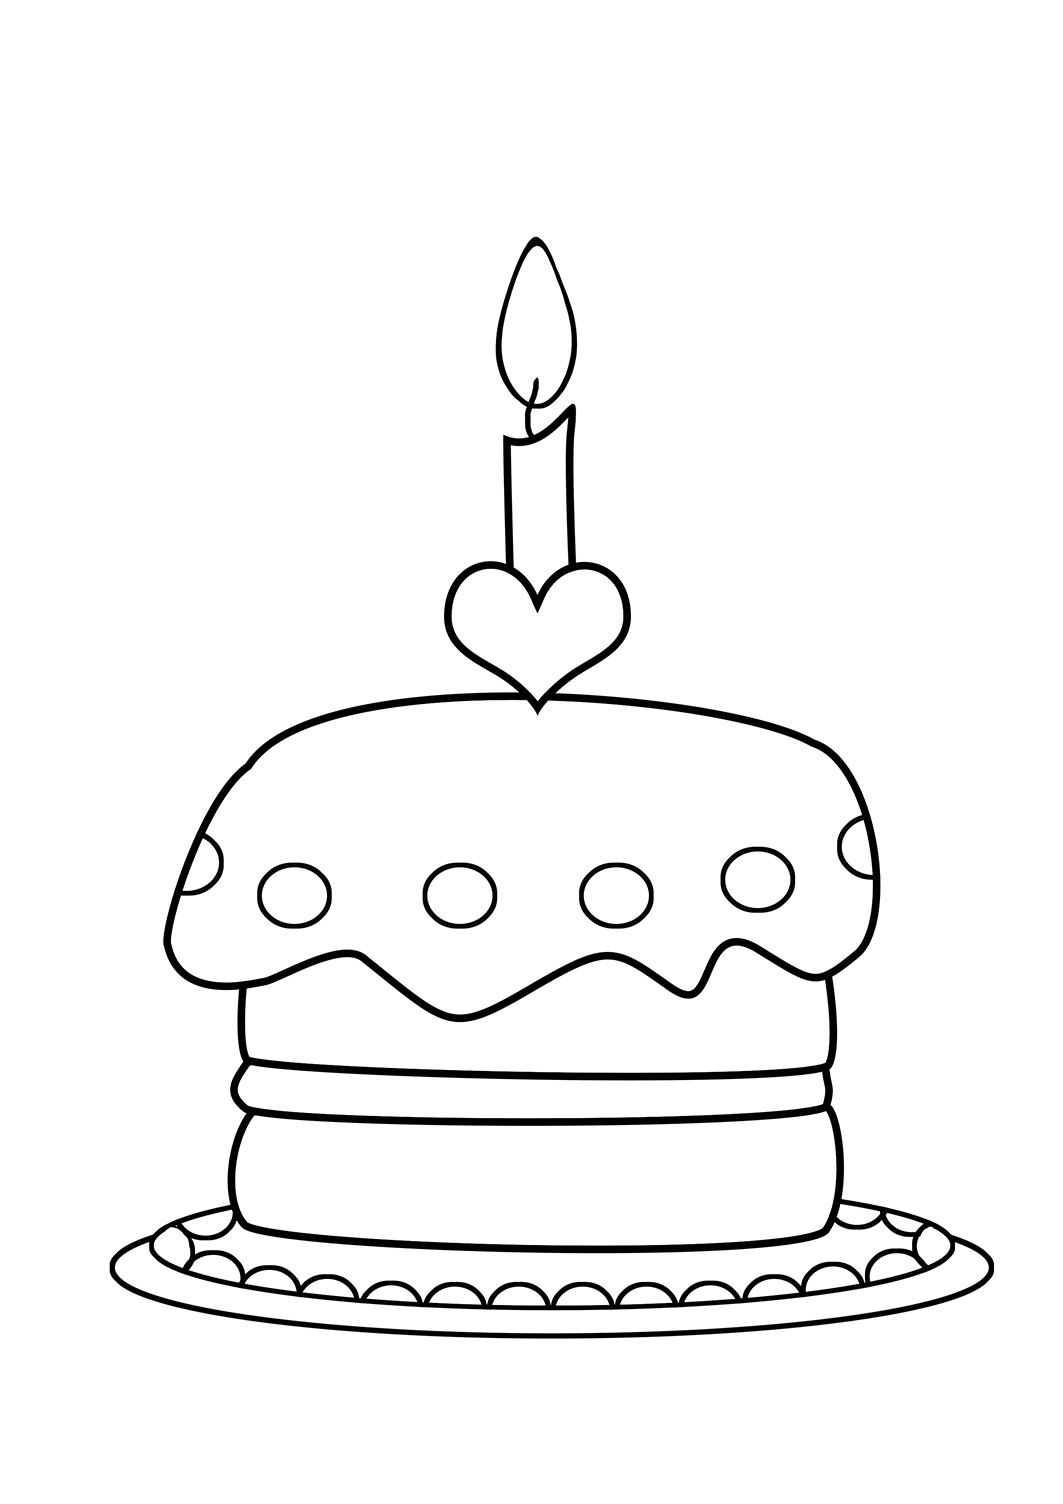 cupcake birthday coloring page